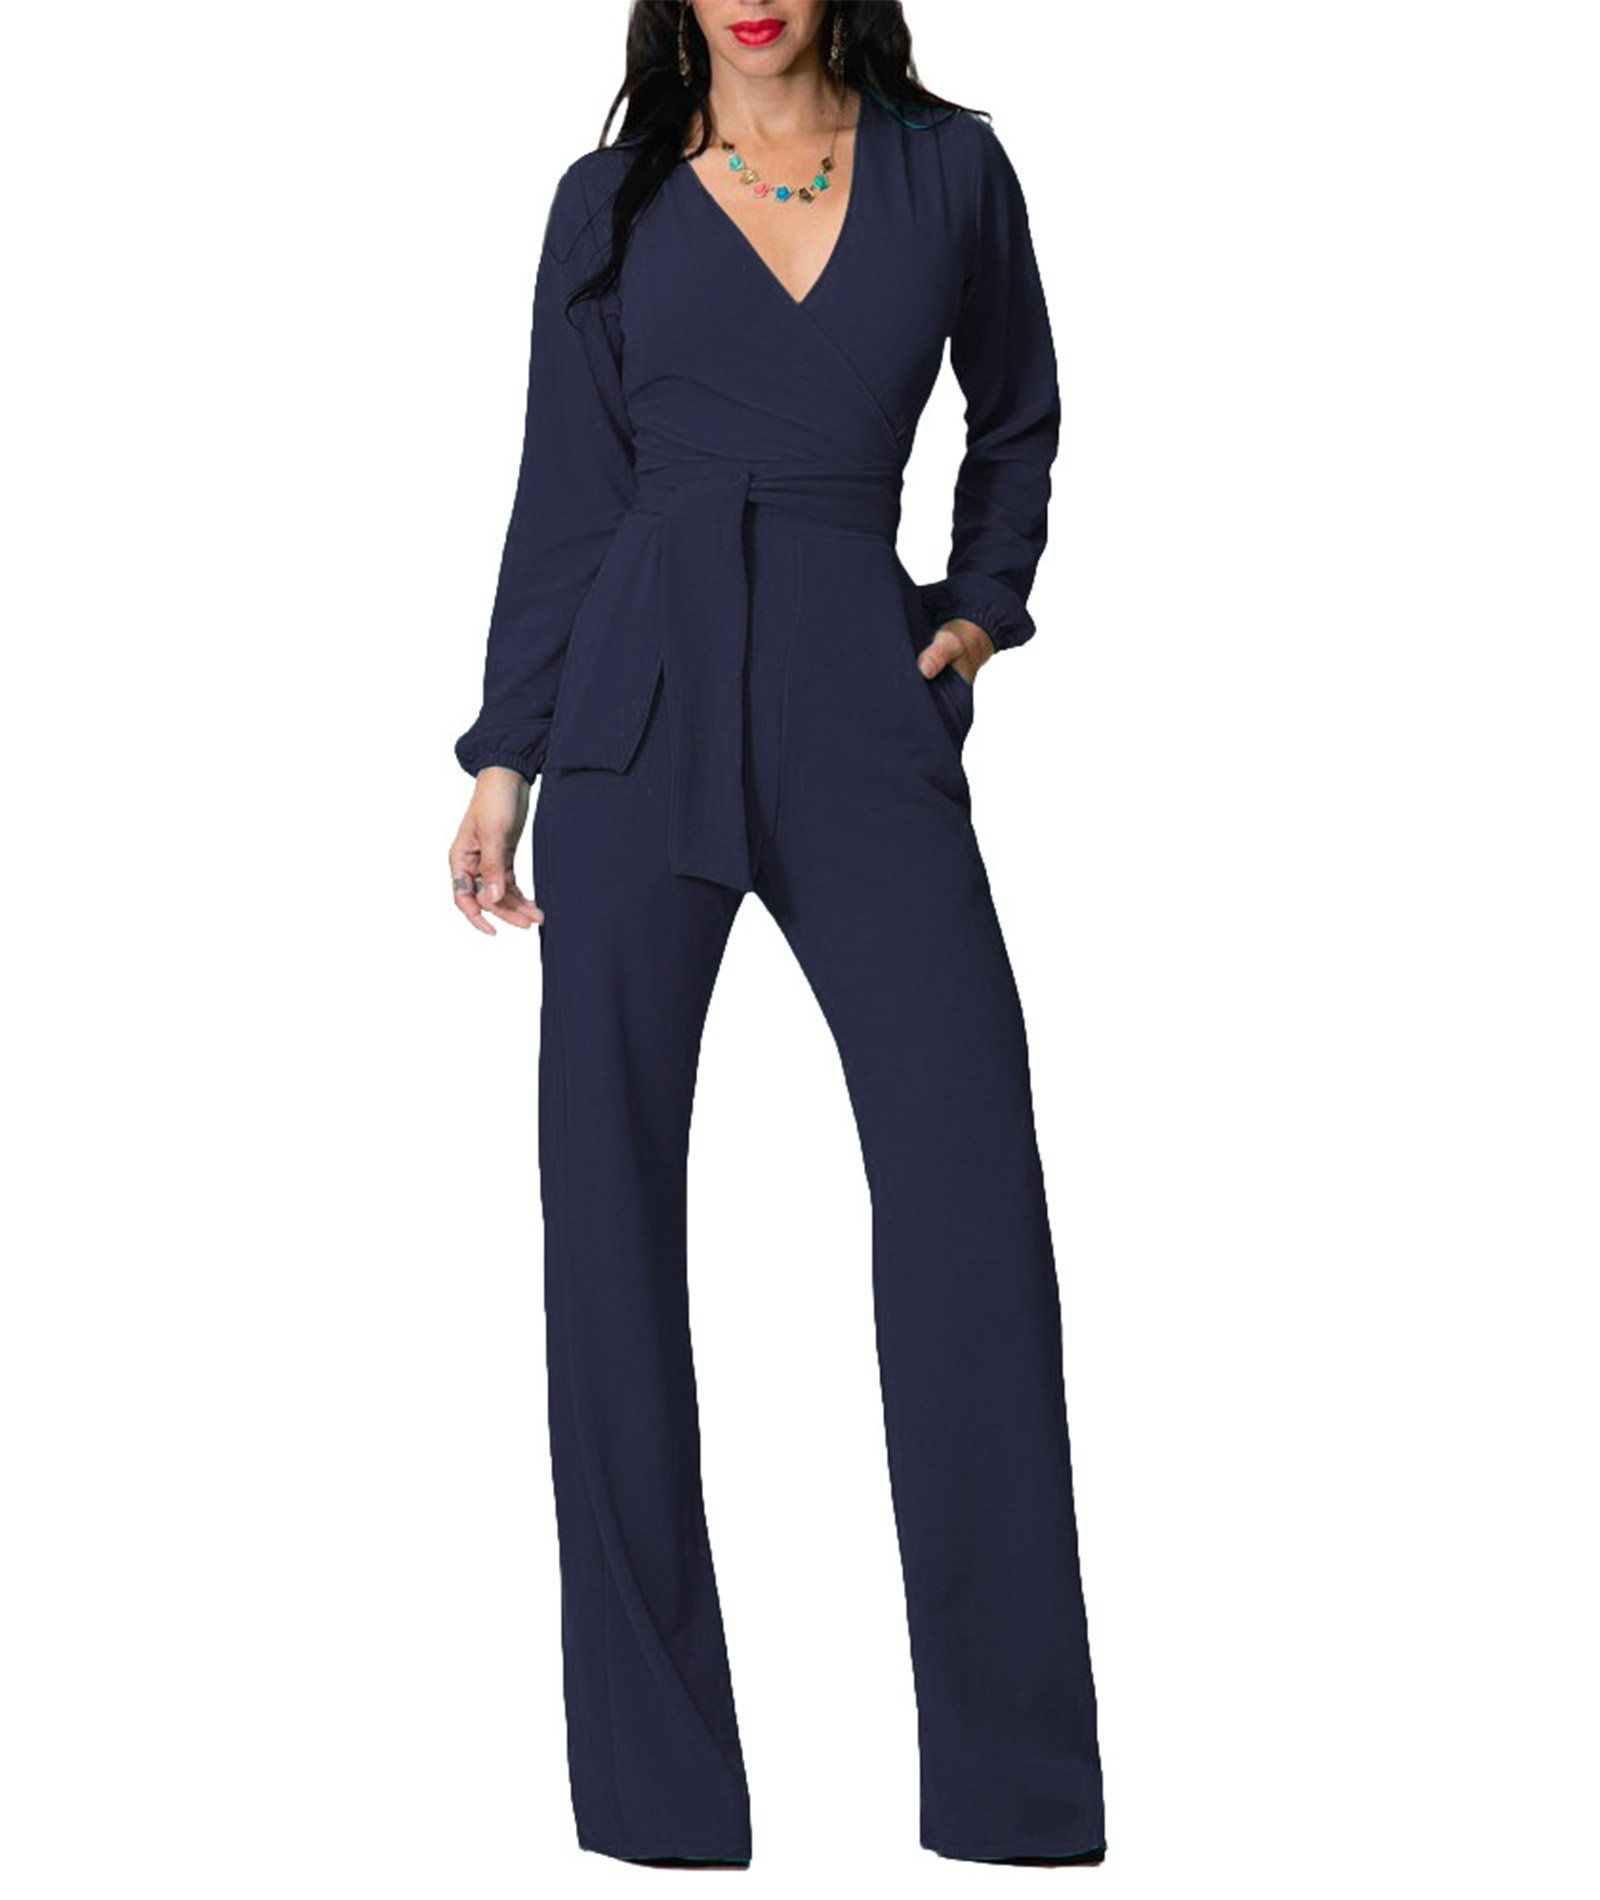 IyMoo Women's Sexy Deep V Neck Sleeveless Wide Leg Loose Jumpsuits Rompers Royal Blue X-Large